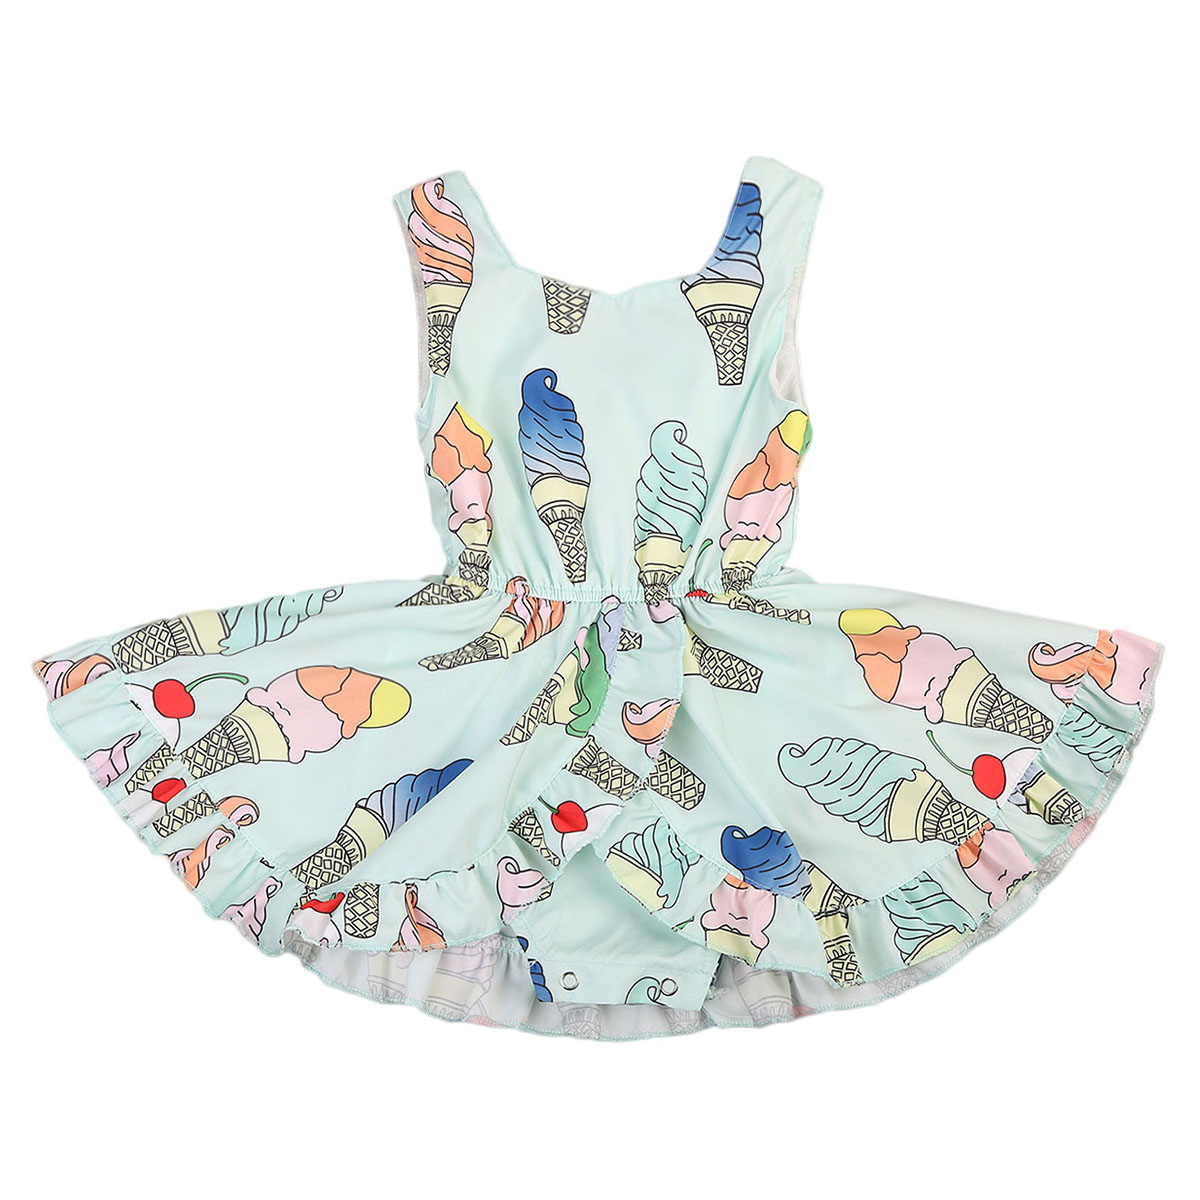 Newborn Kids Baby Girls Cute Dress Romper Tutu Sleeveless MIni Jumpsuit Sunsuit Clothes Dresses Girl Summer cute newborn infant baby girl clothes set girls romper letter printed bodysuit floral tutu skirted bloomers short outfit sunsuit